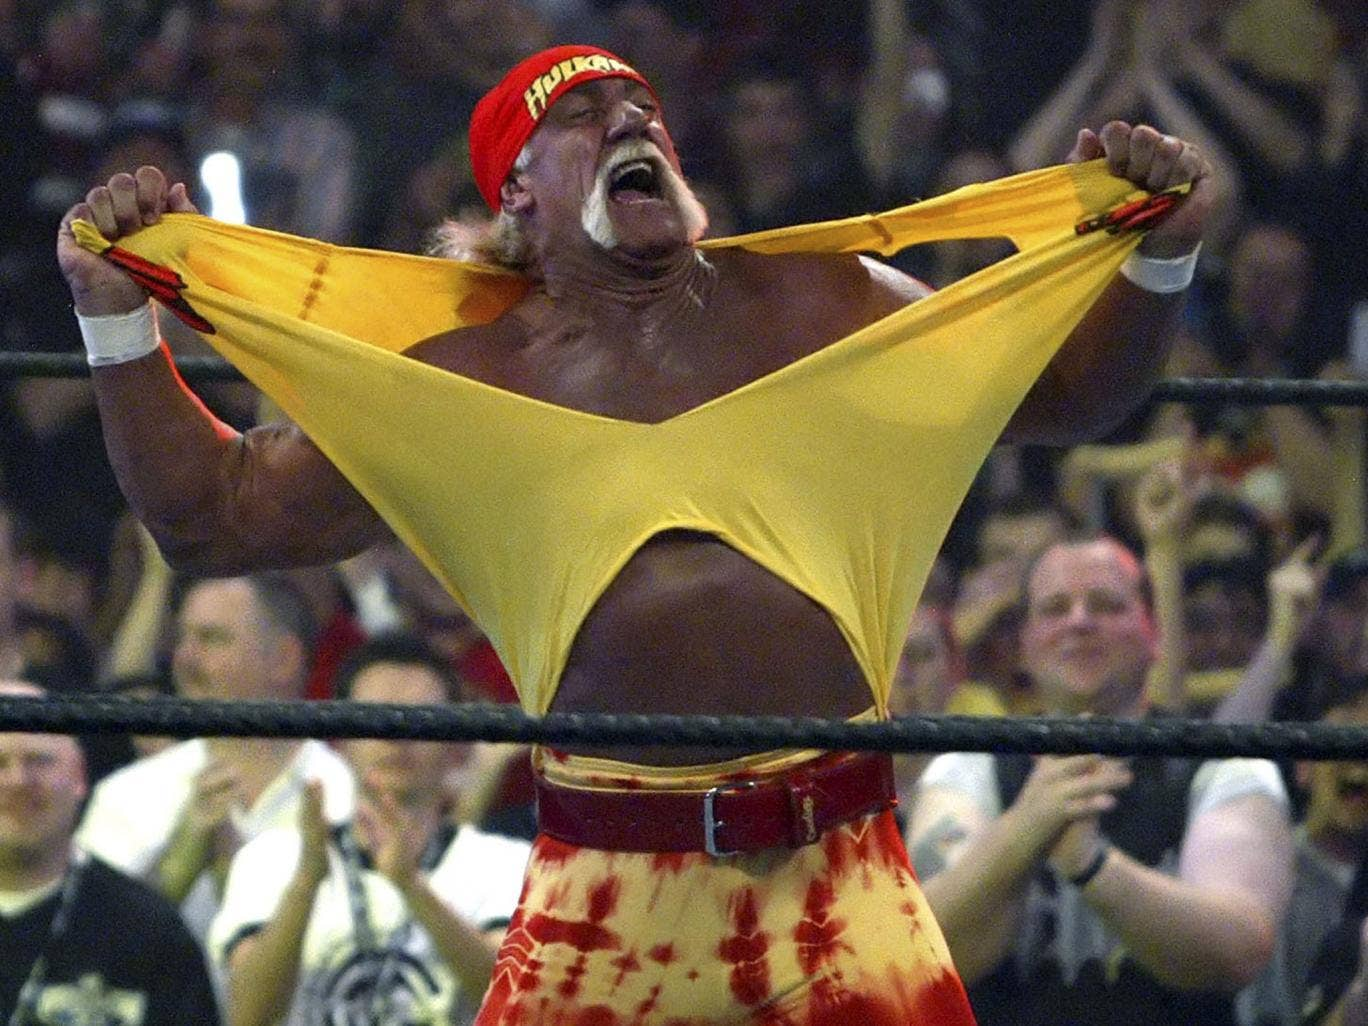 Hulk Hogan: the man who ripped shirts across the country in the name of entertainment